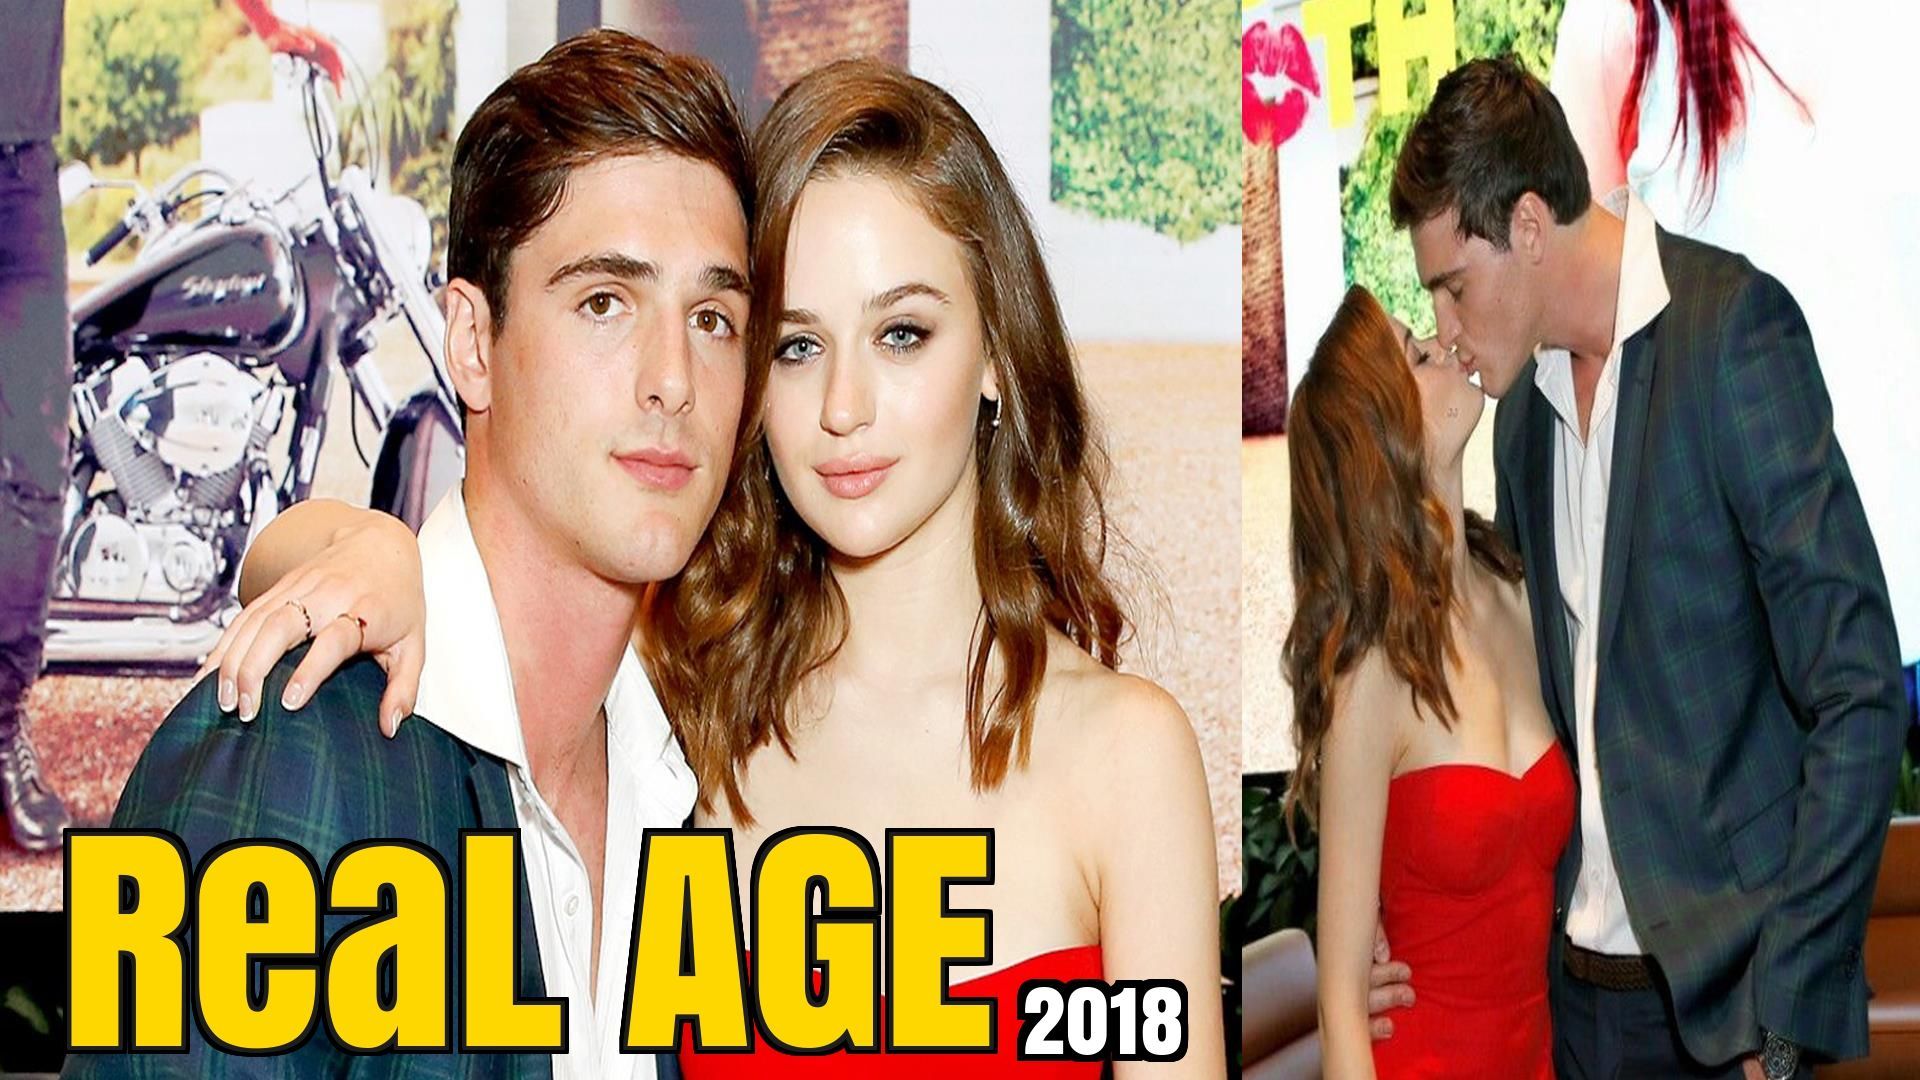 The Kissing Booth Cast Real AGE 2018 Kissing booth